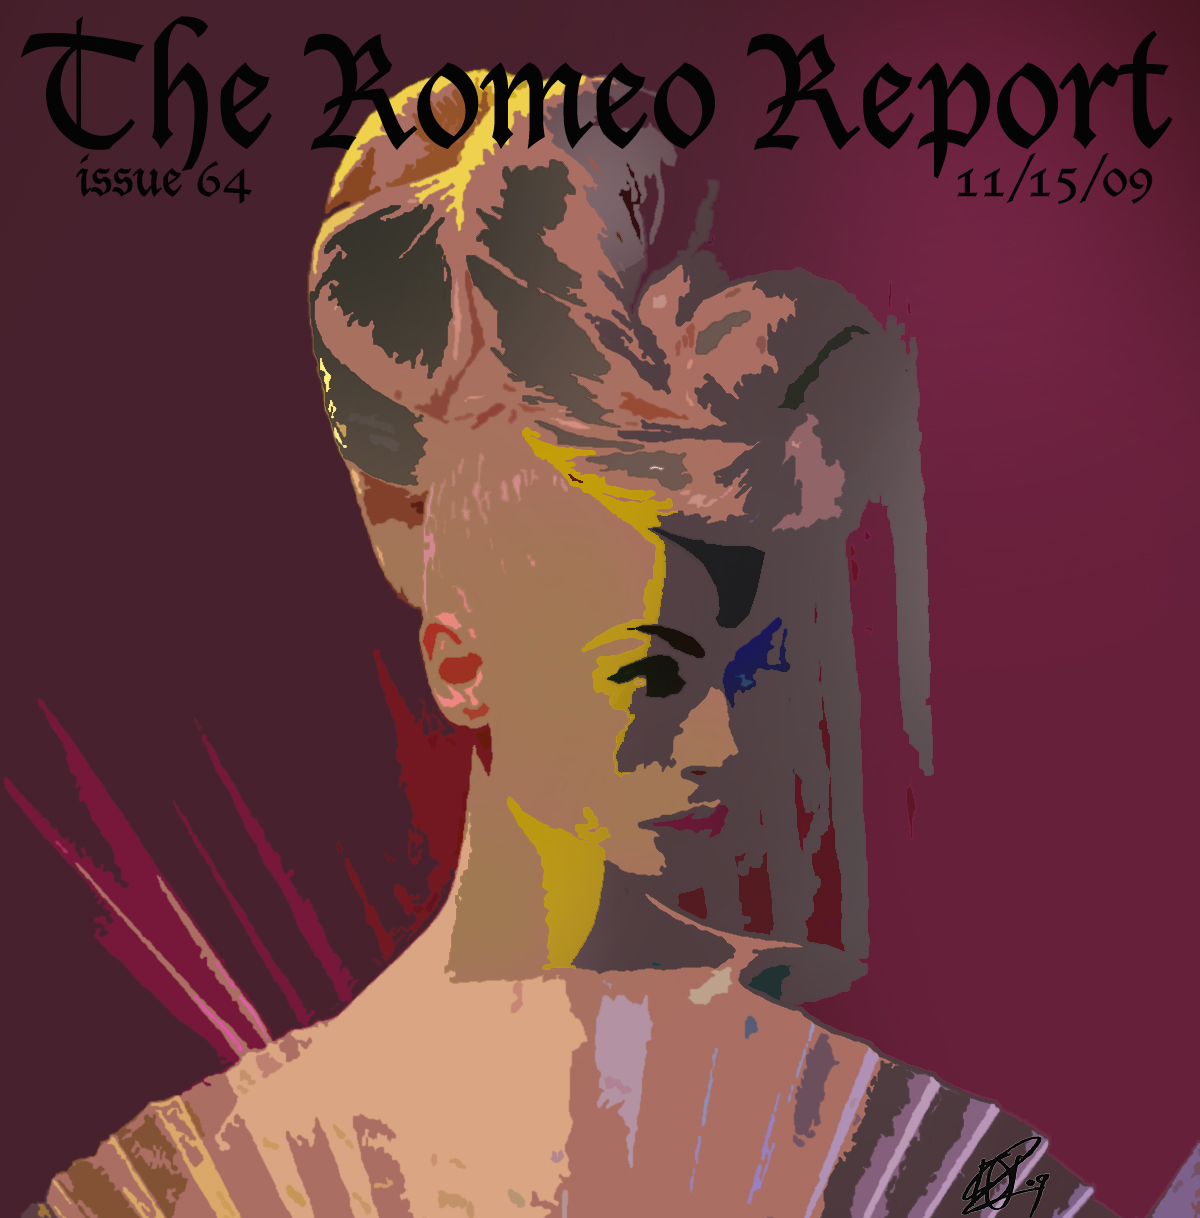 theromeoreport issu 64